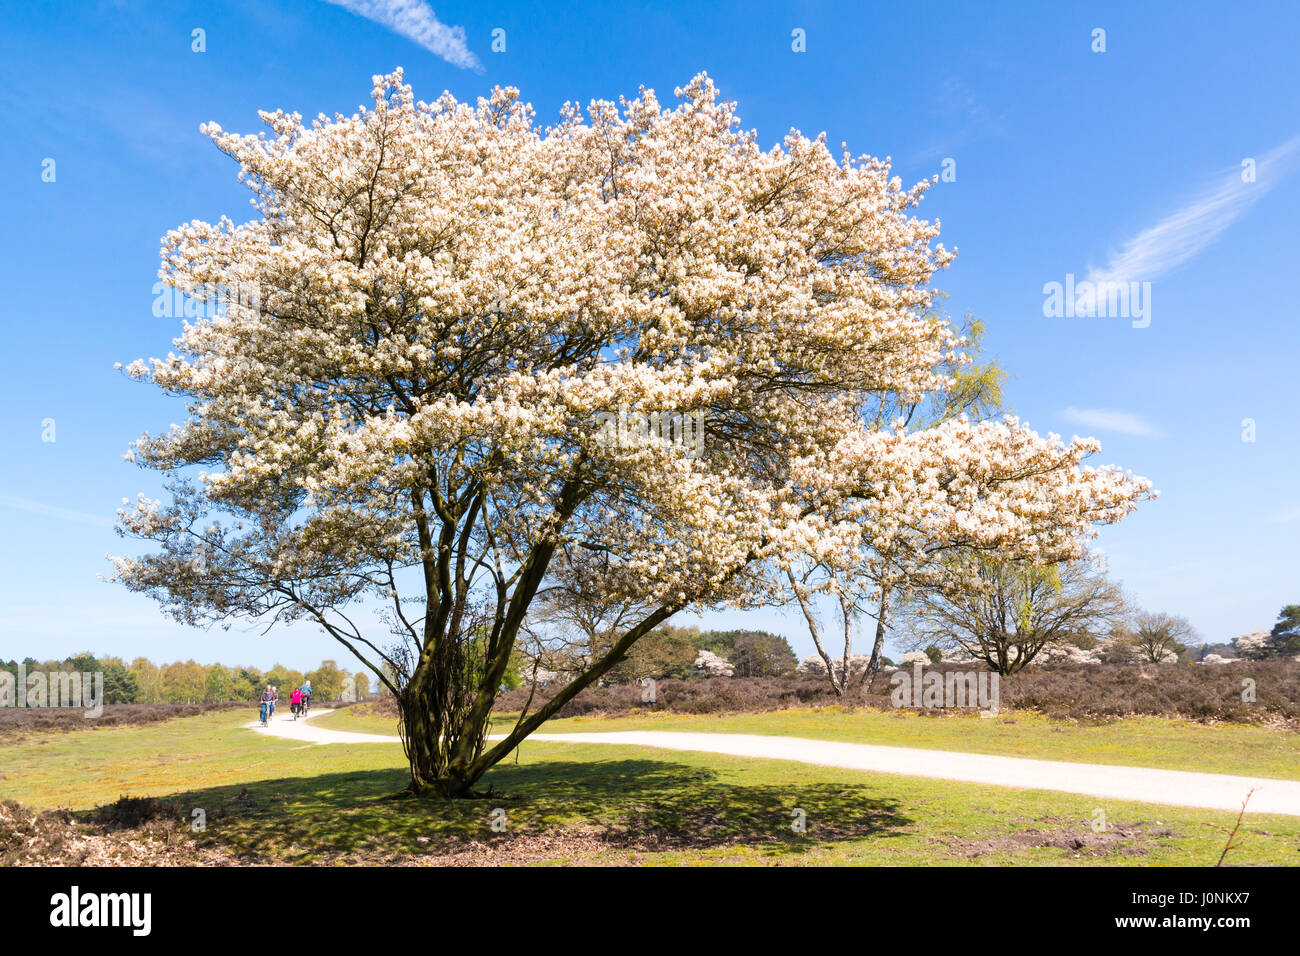 Heathland with blooming Amelanchier lamarkii tree and bicyclists on cycle path, Hilversum, Netherlands - Stock Image